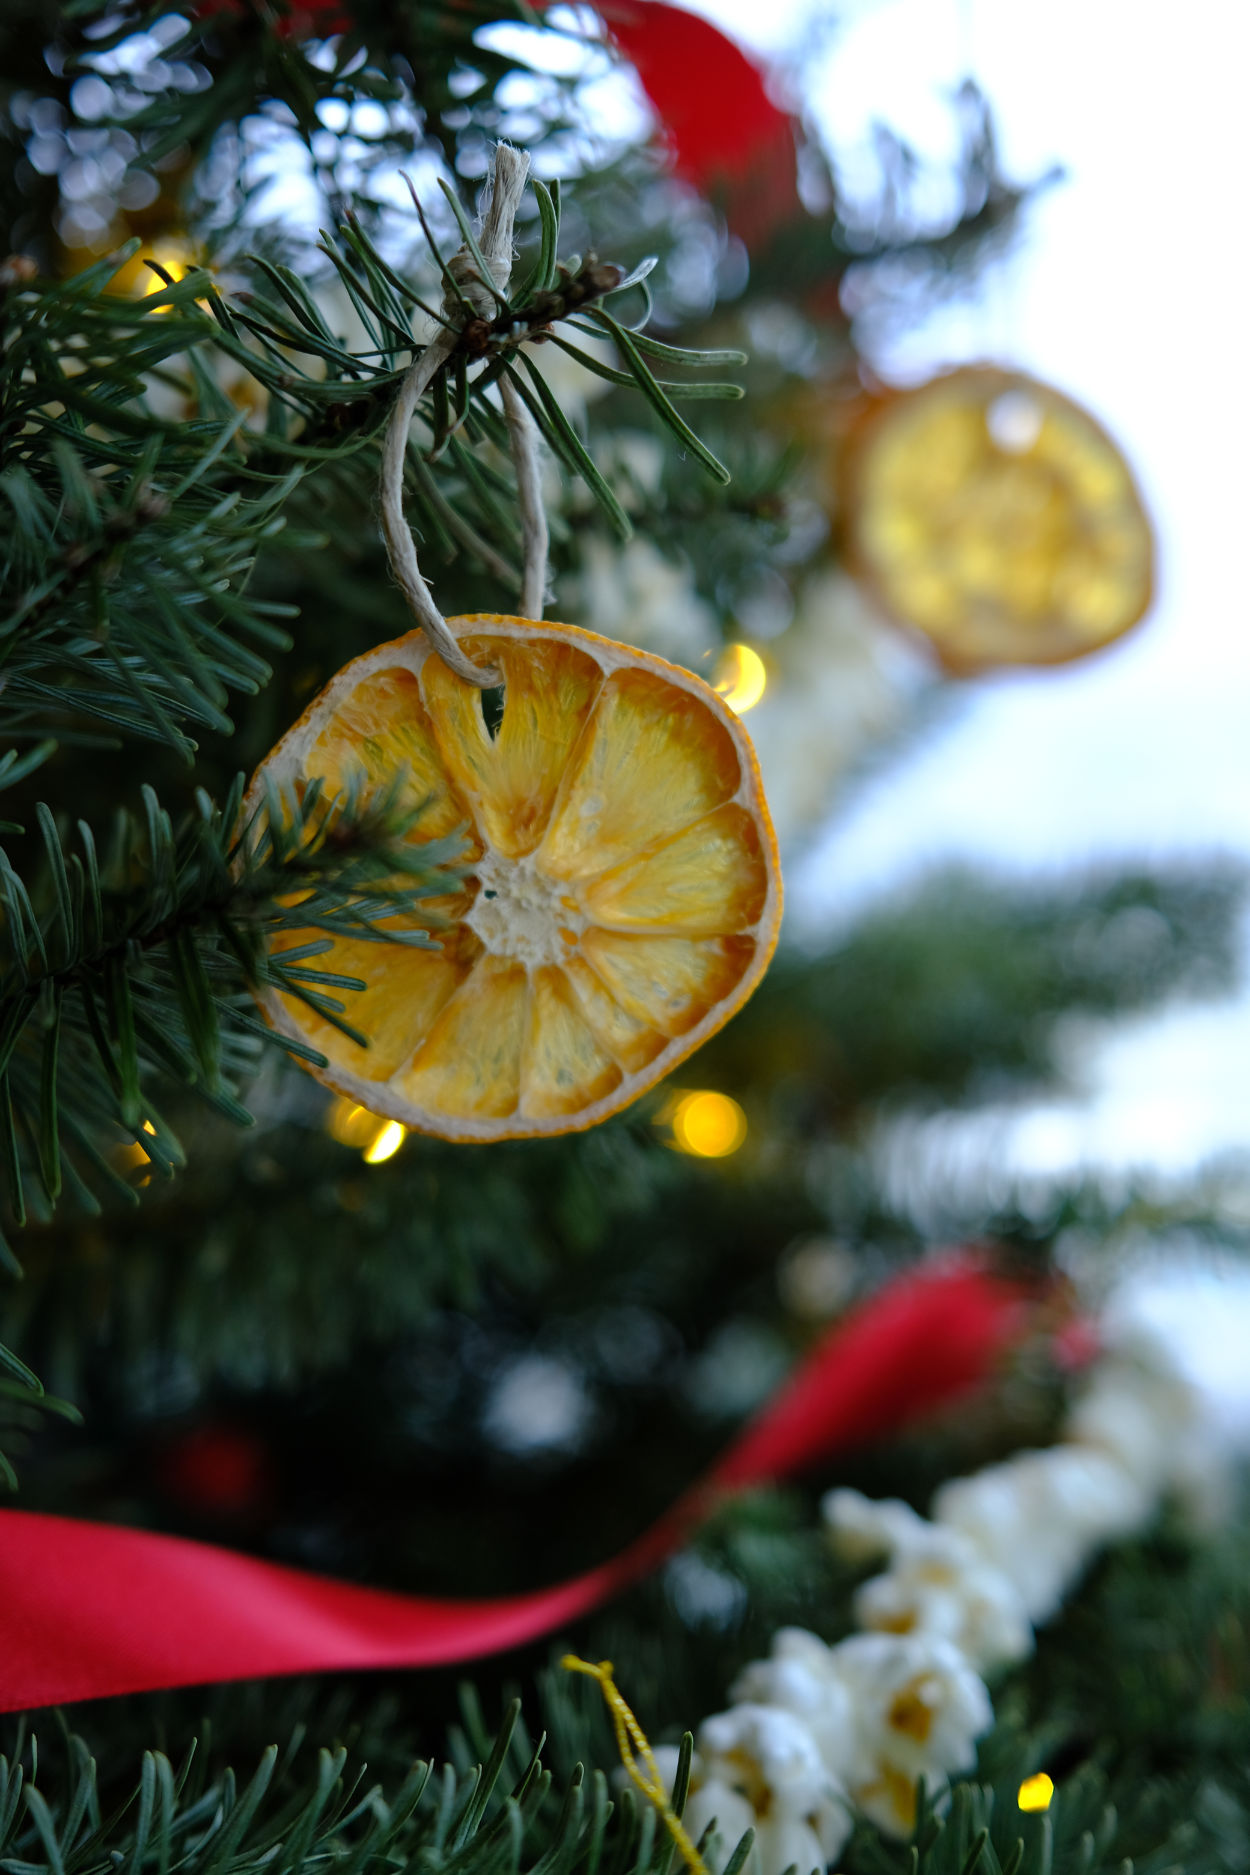 Dried orange ornaments on a Christmas tree